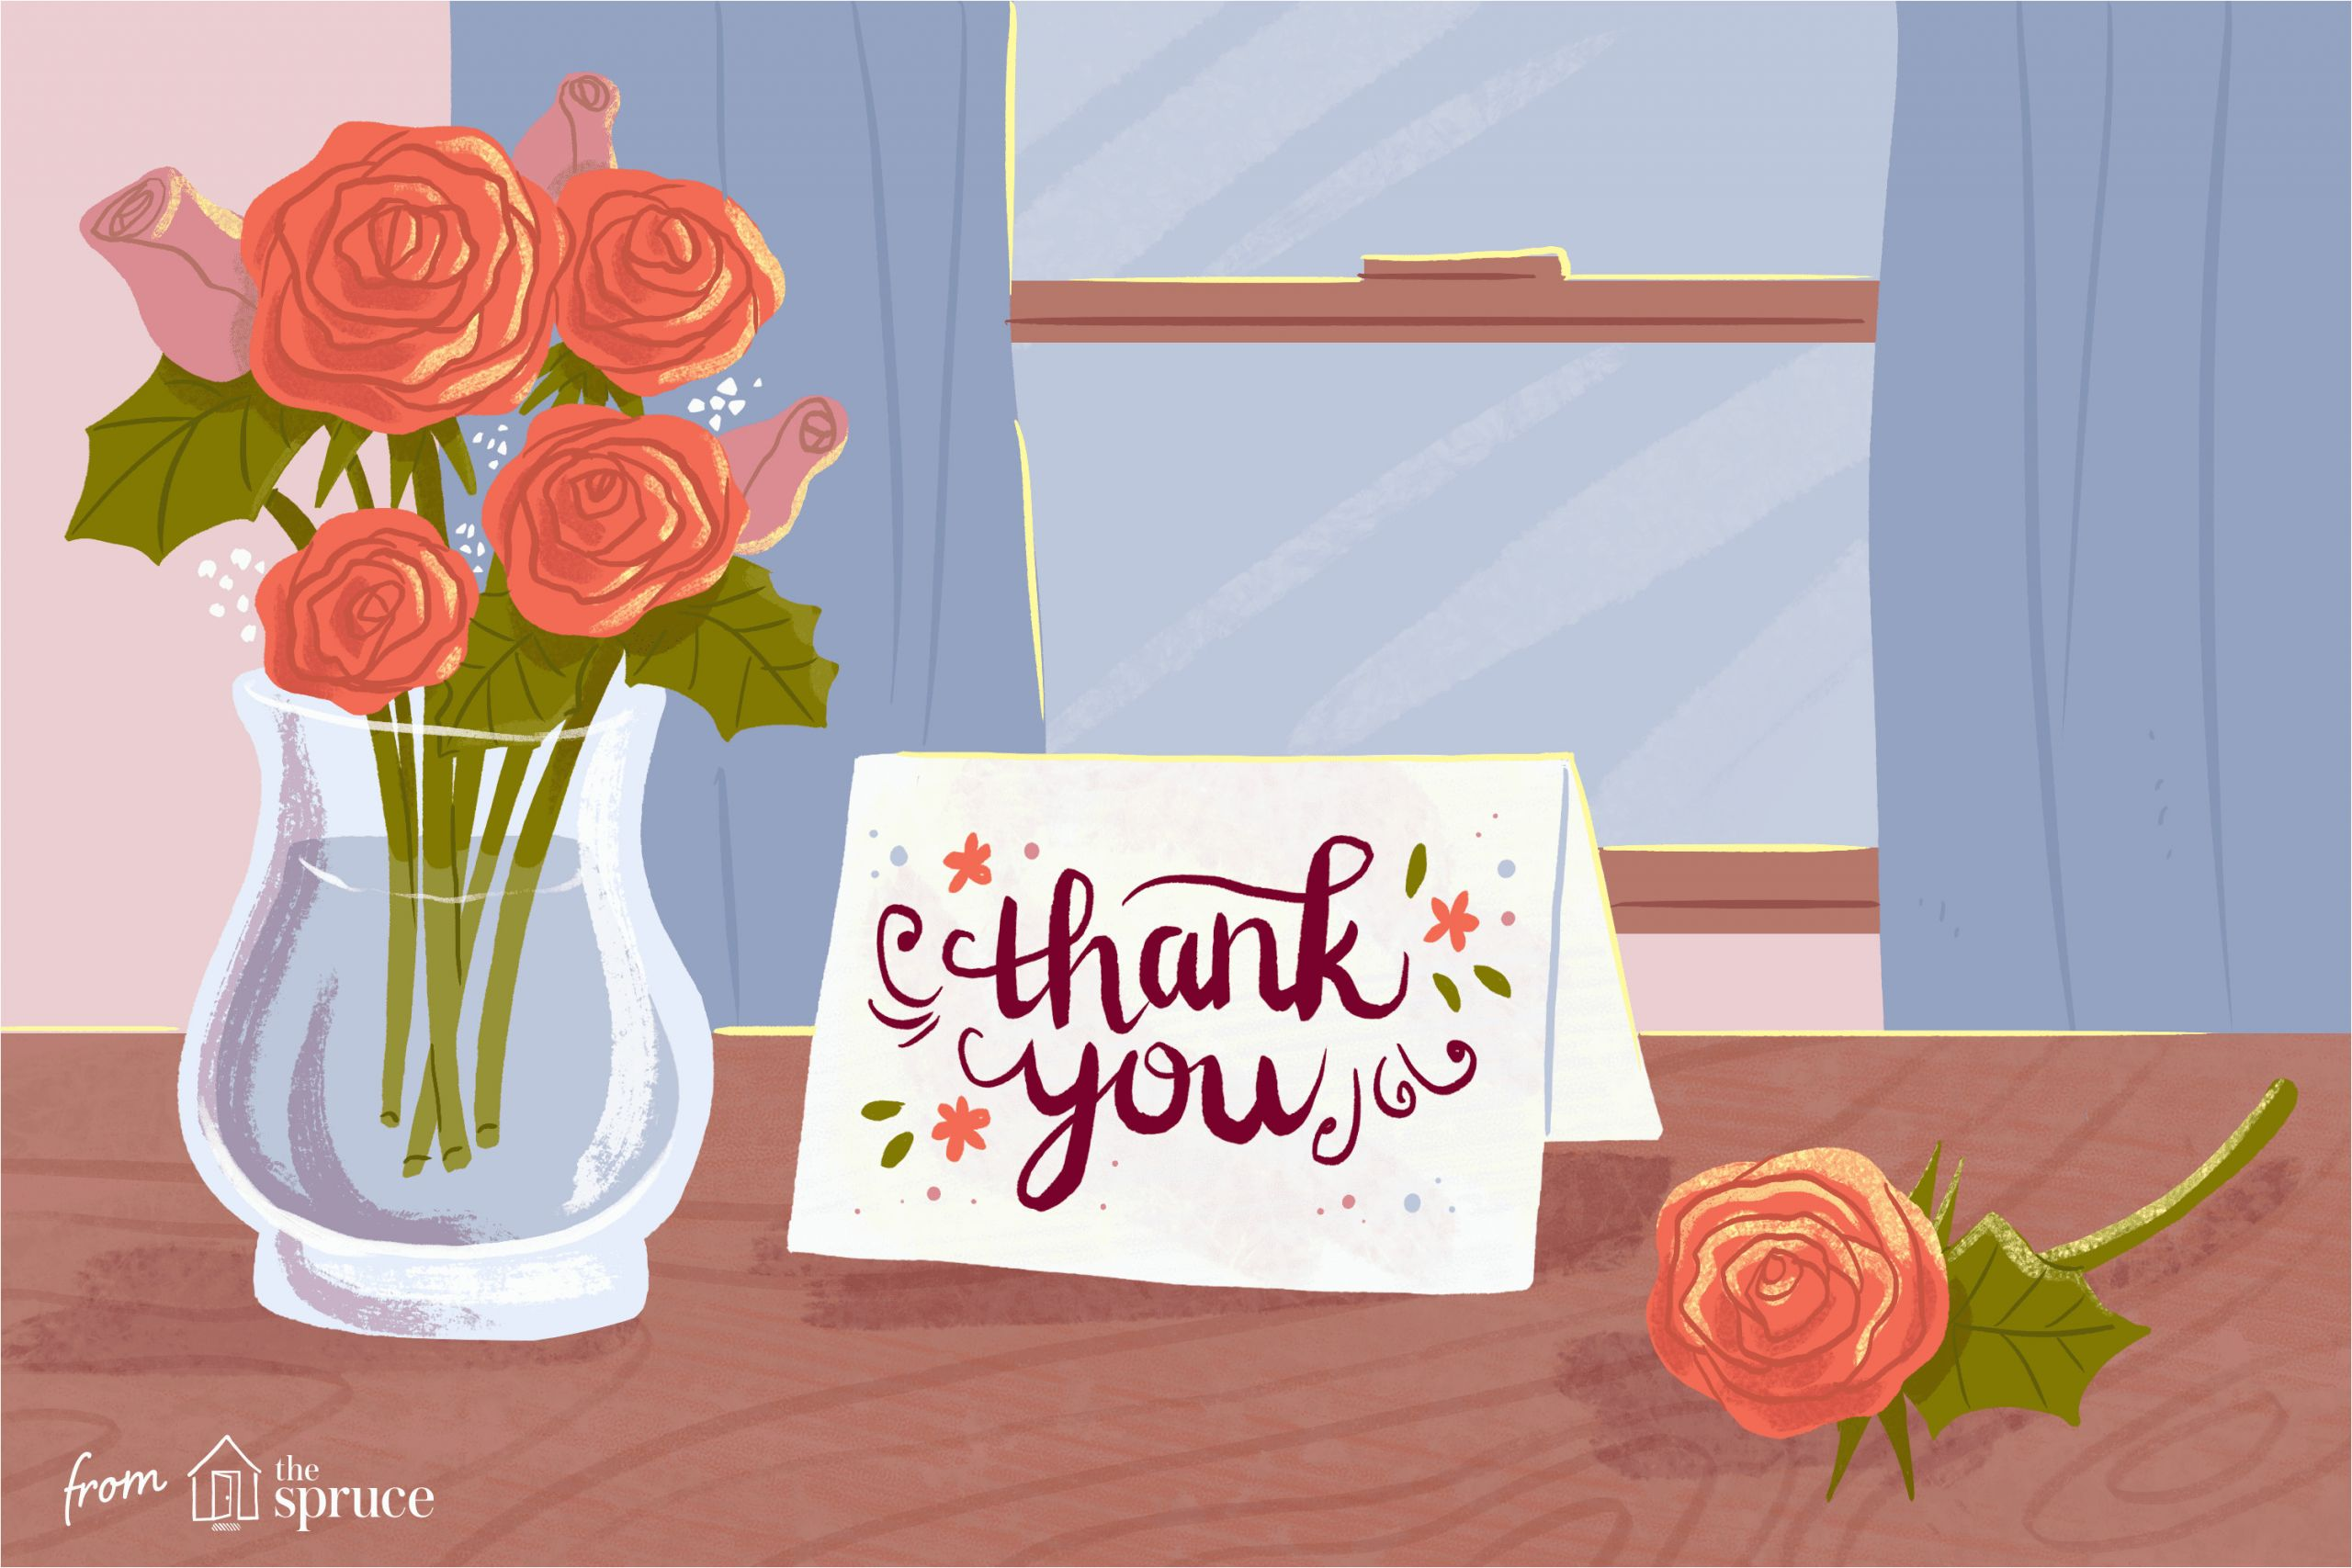 free printable thank you cards 1357486 final 3627ab0bf27b46f48fa724e24a516572 png